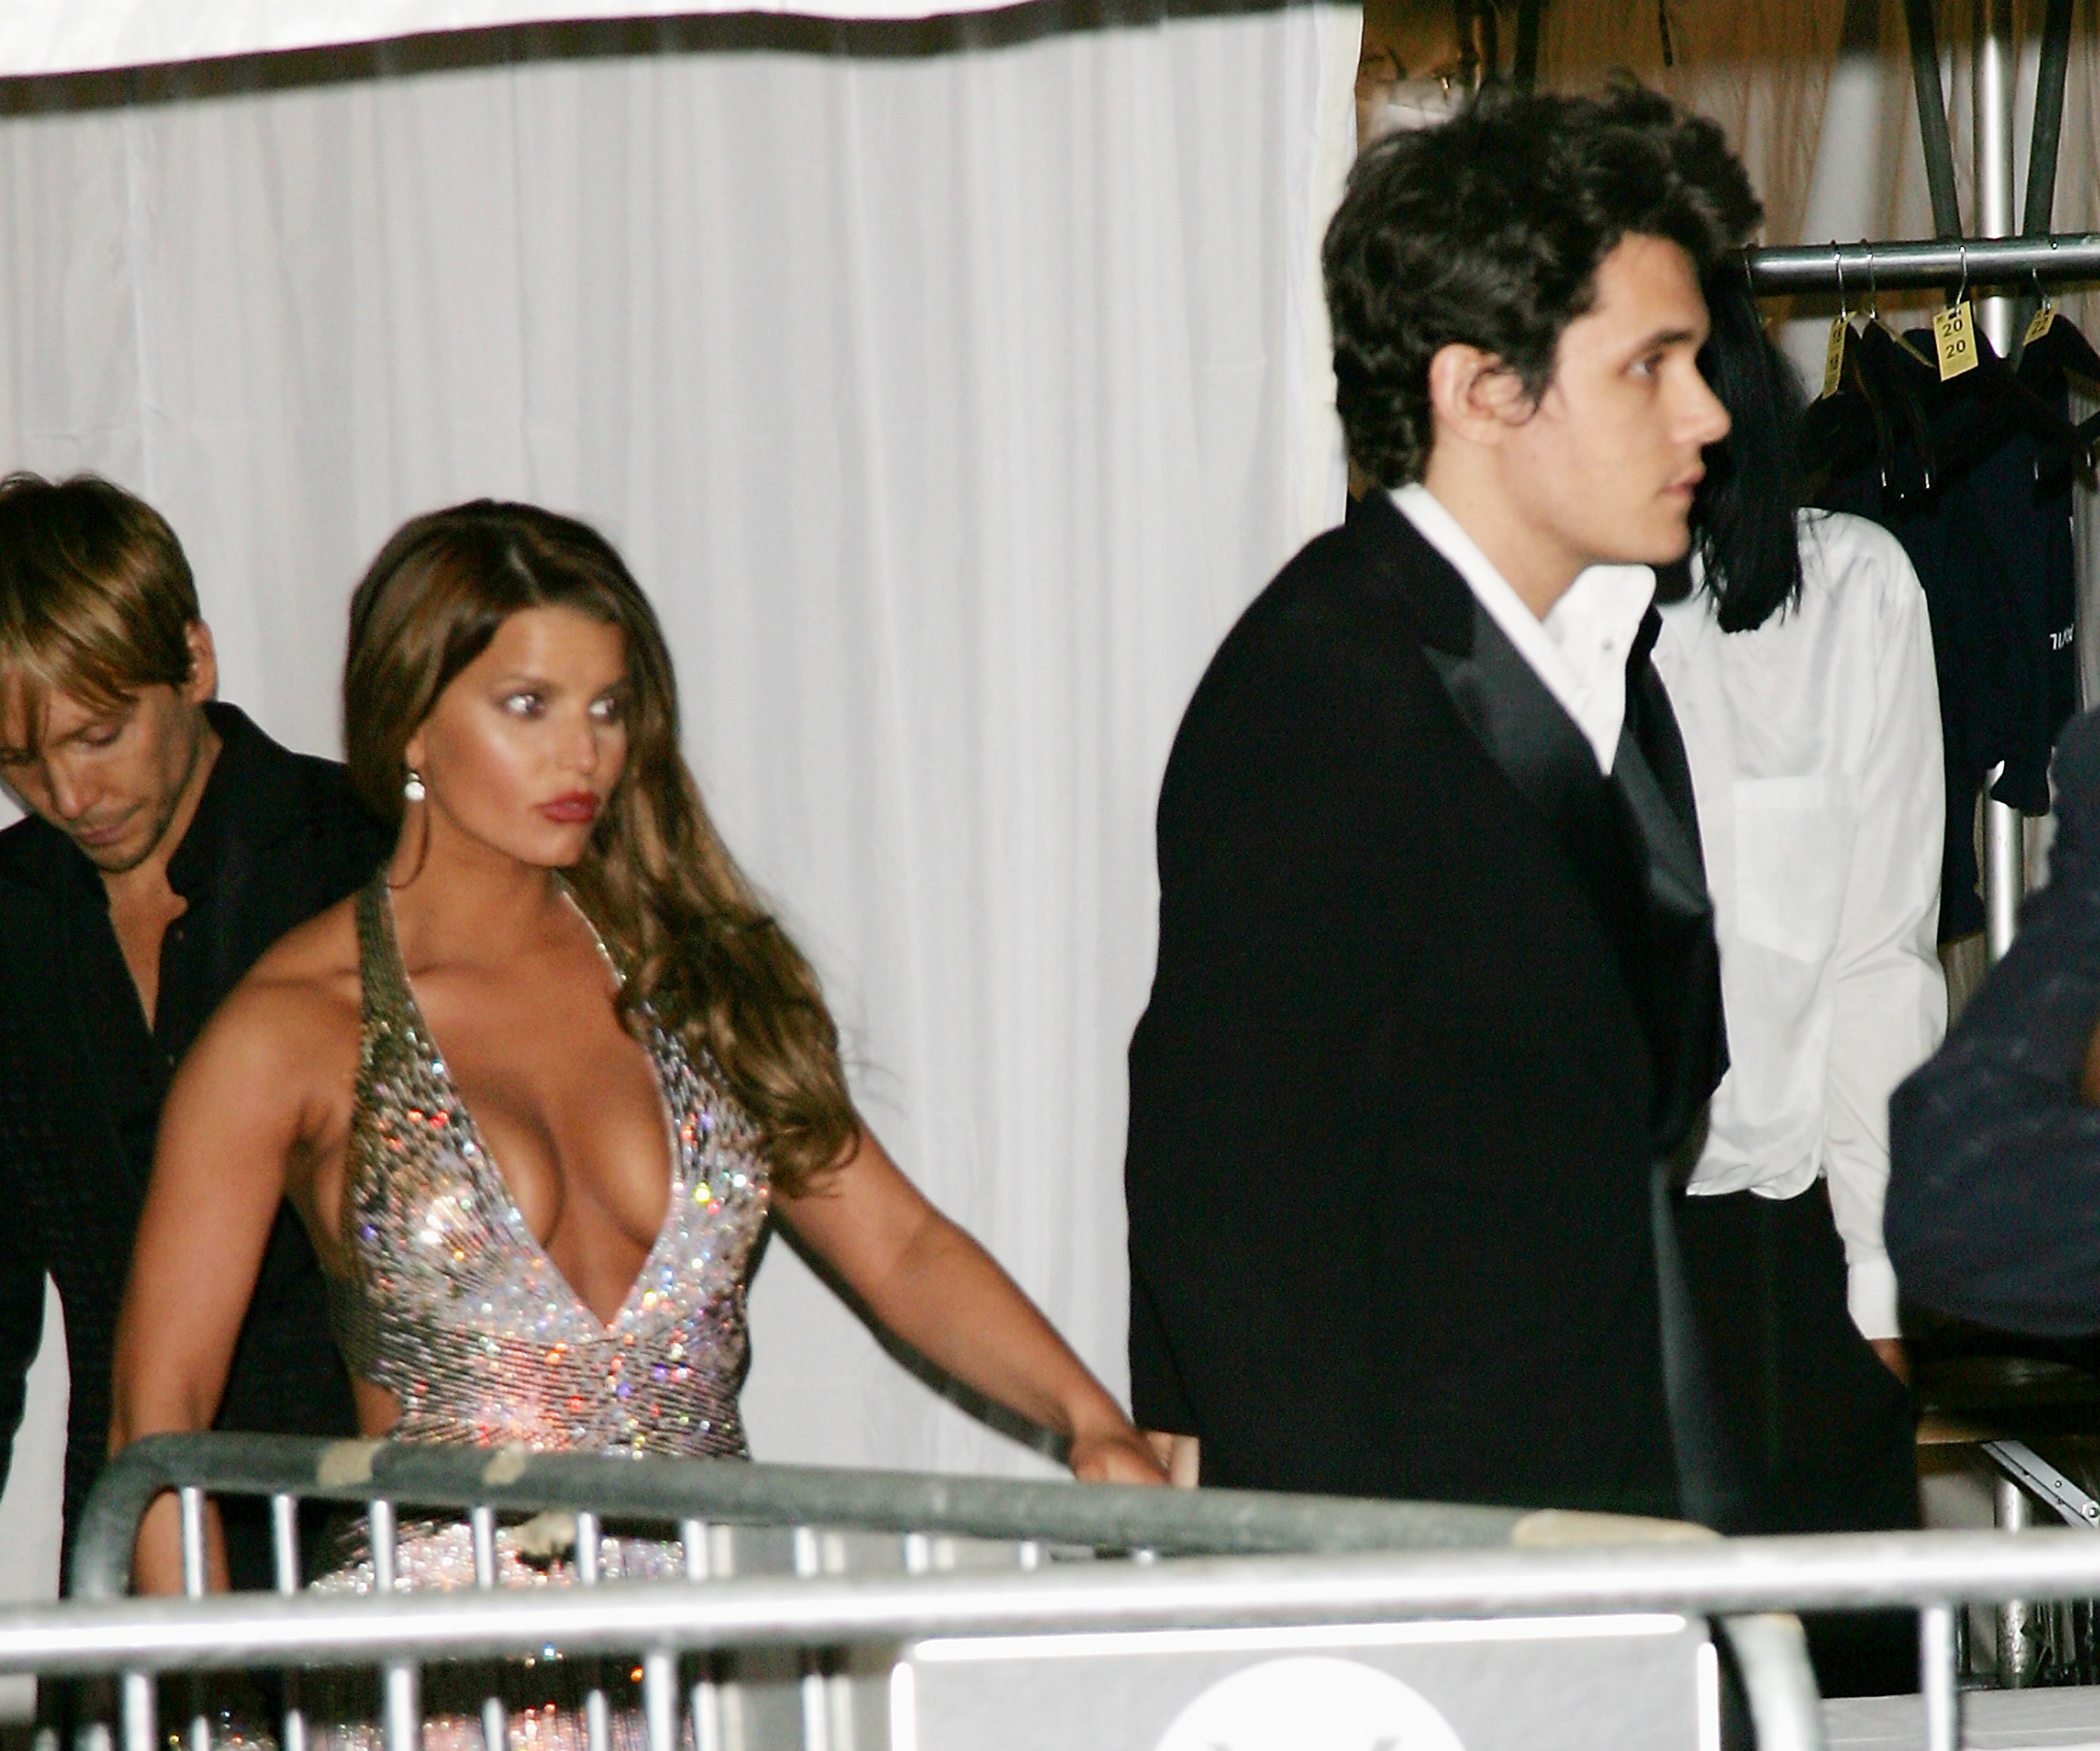 Jessica simpson dating john mayer